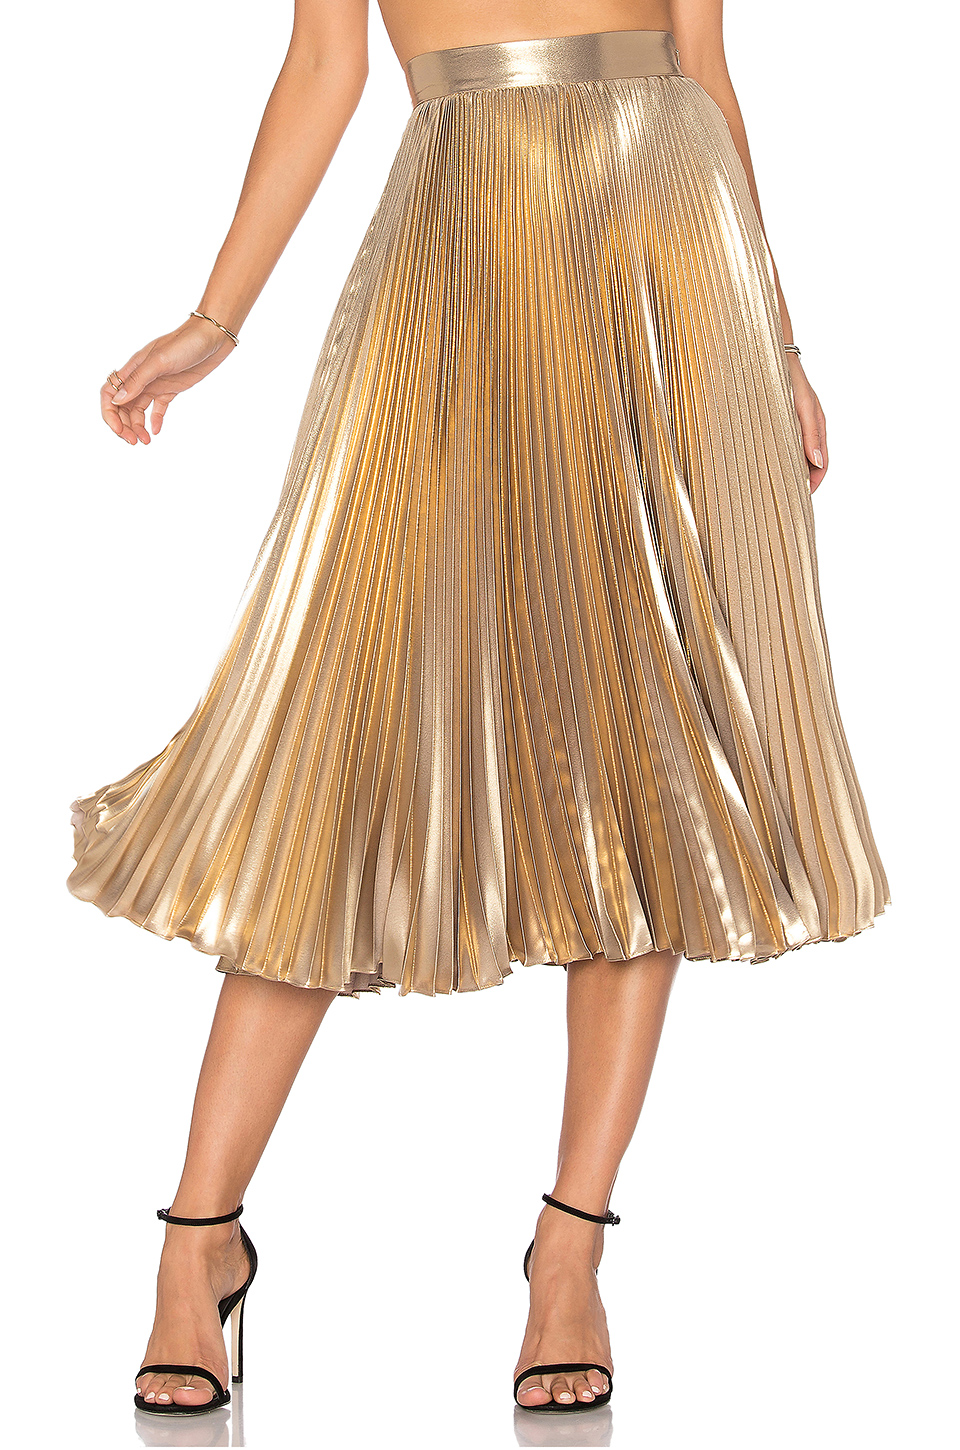 FRANKIE GOLD PLEATED SKIRT